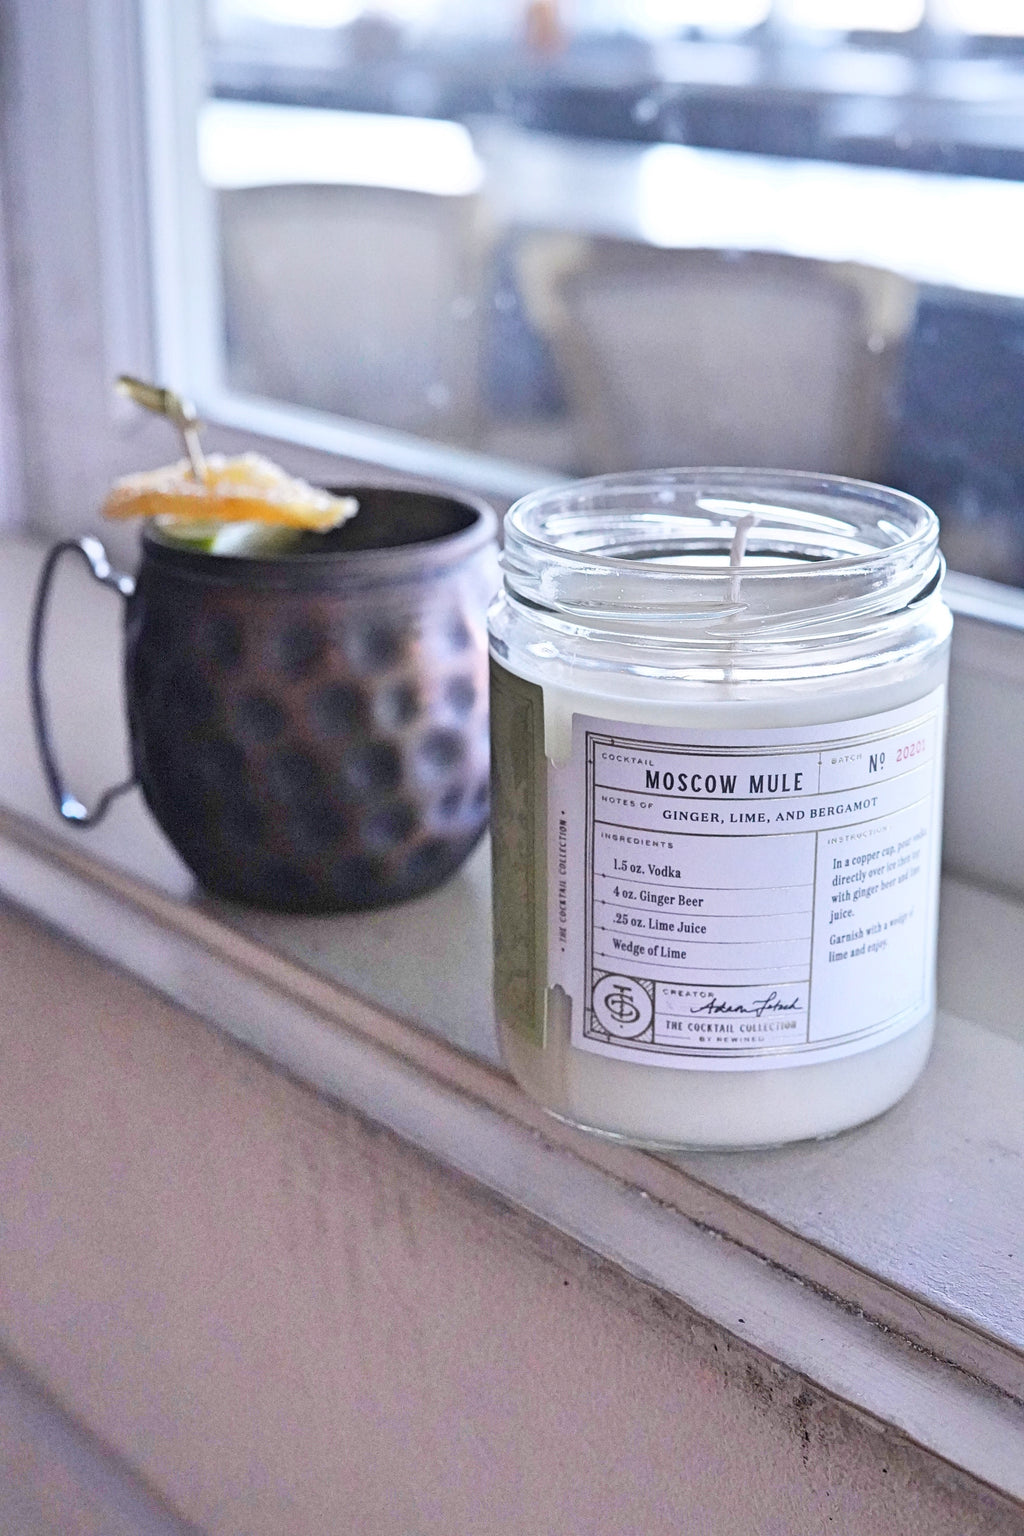 Moscow Mule 12 oz. Candle